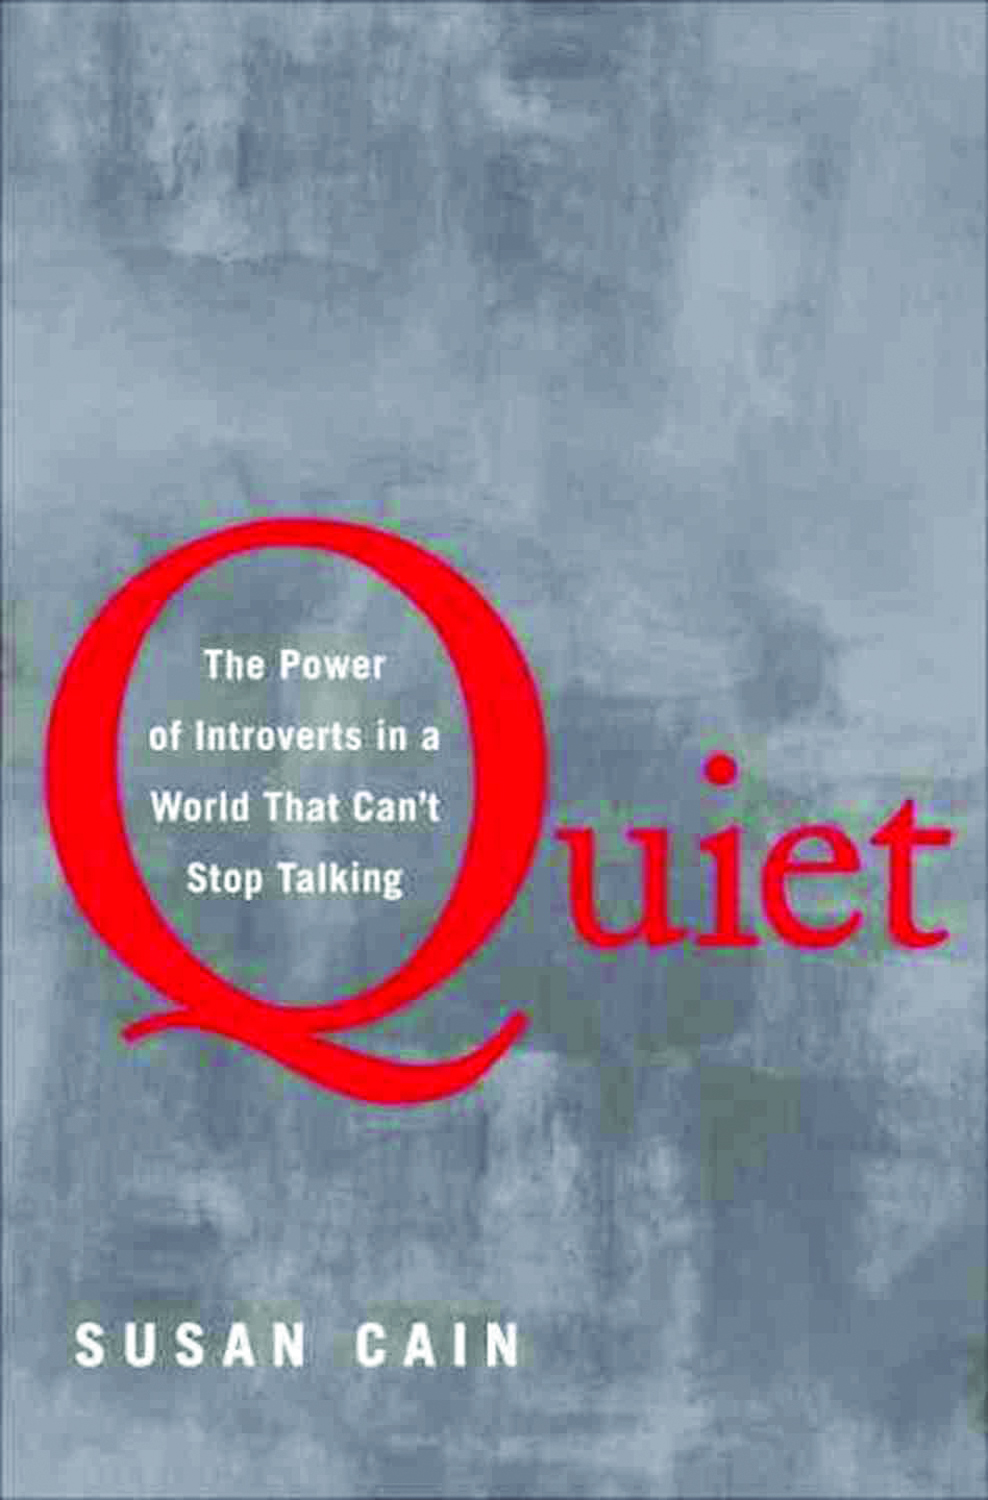 BOOKWORM Quiet The Power of Introverts in a World That Can't Stop Talking.jpg